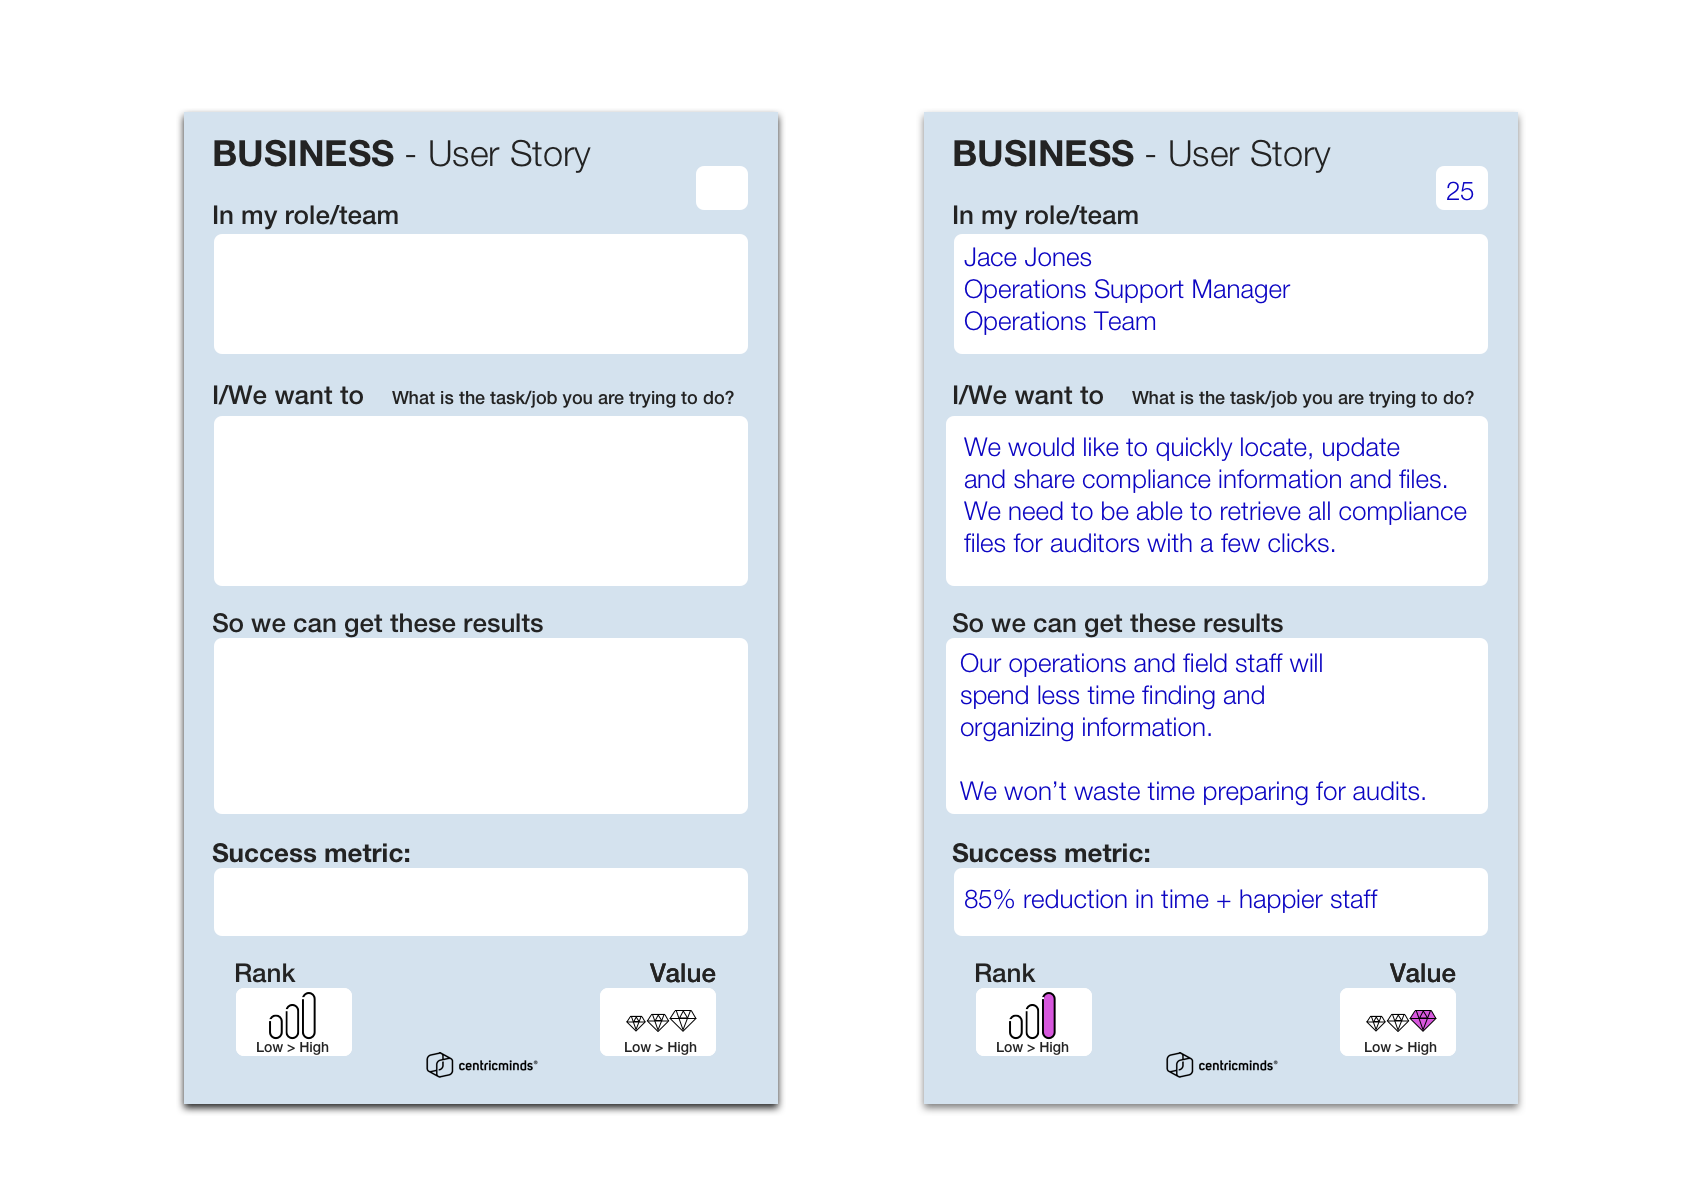 Business User Story Card Image